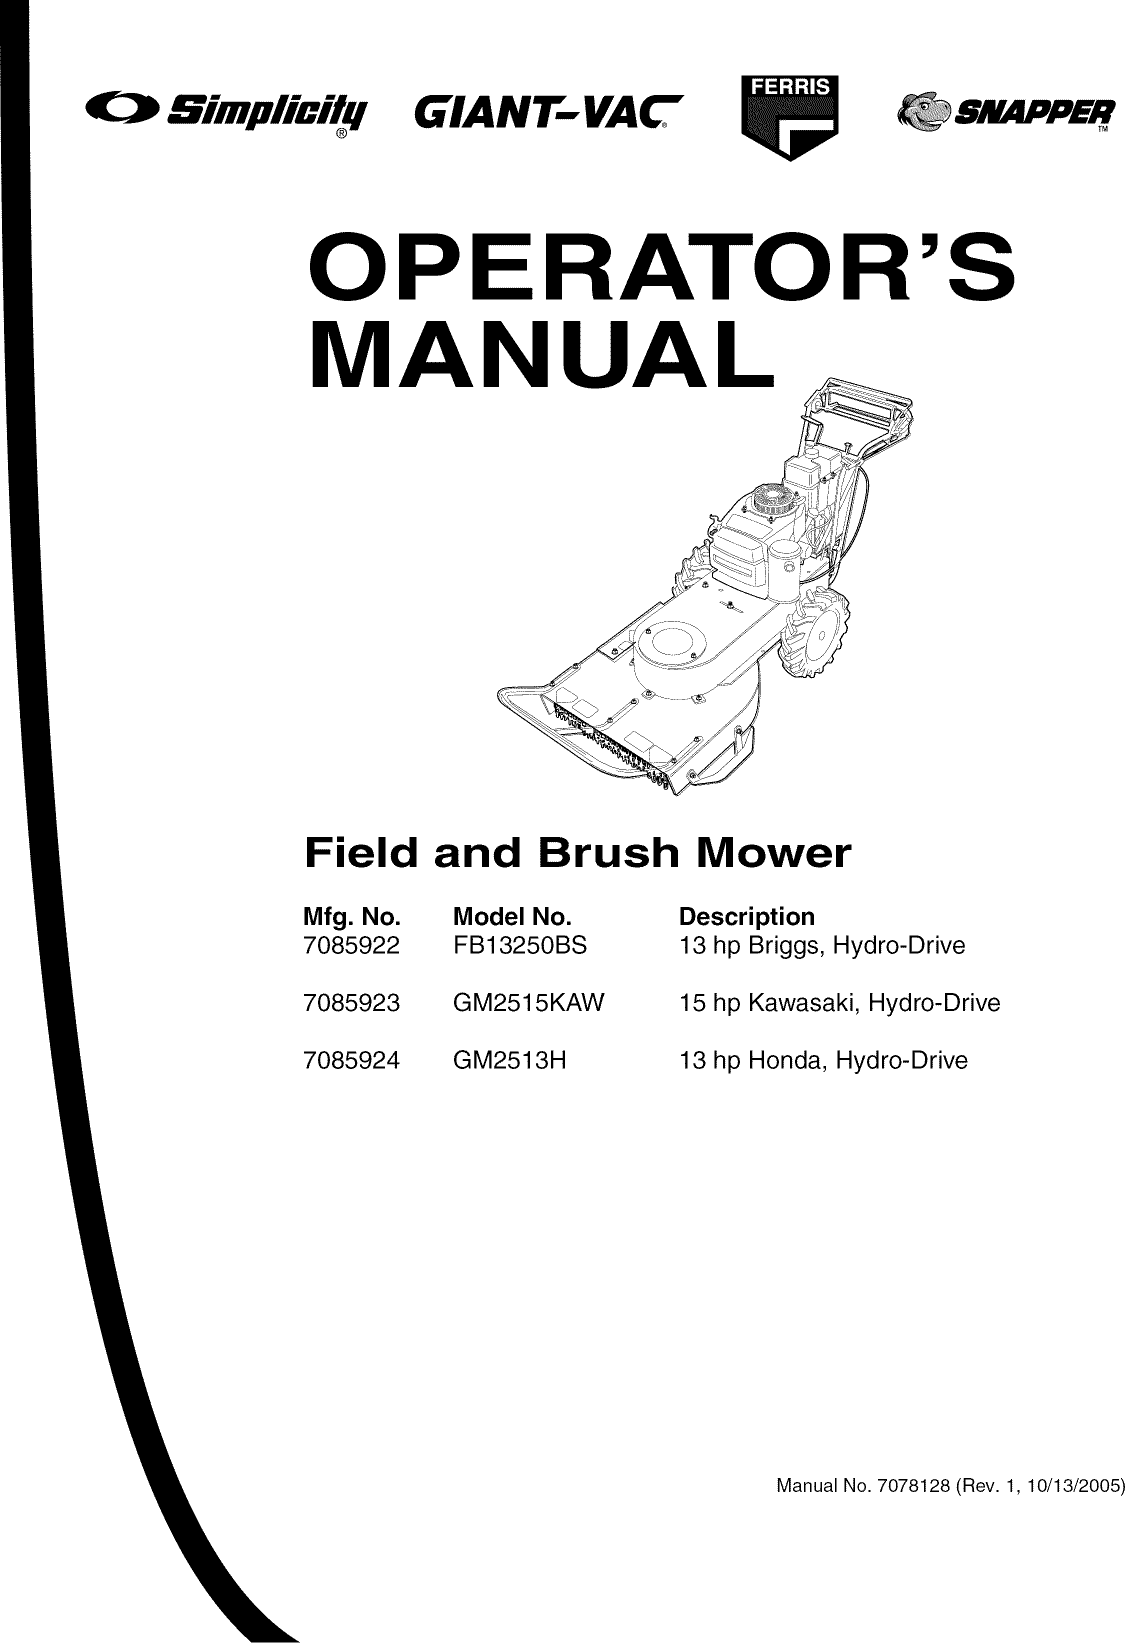 Snapper FB13250BS User Manual LAWN MOWER Manuals And